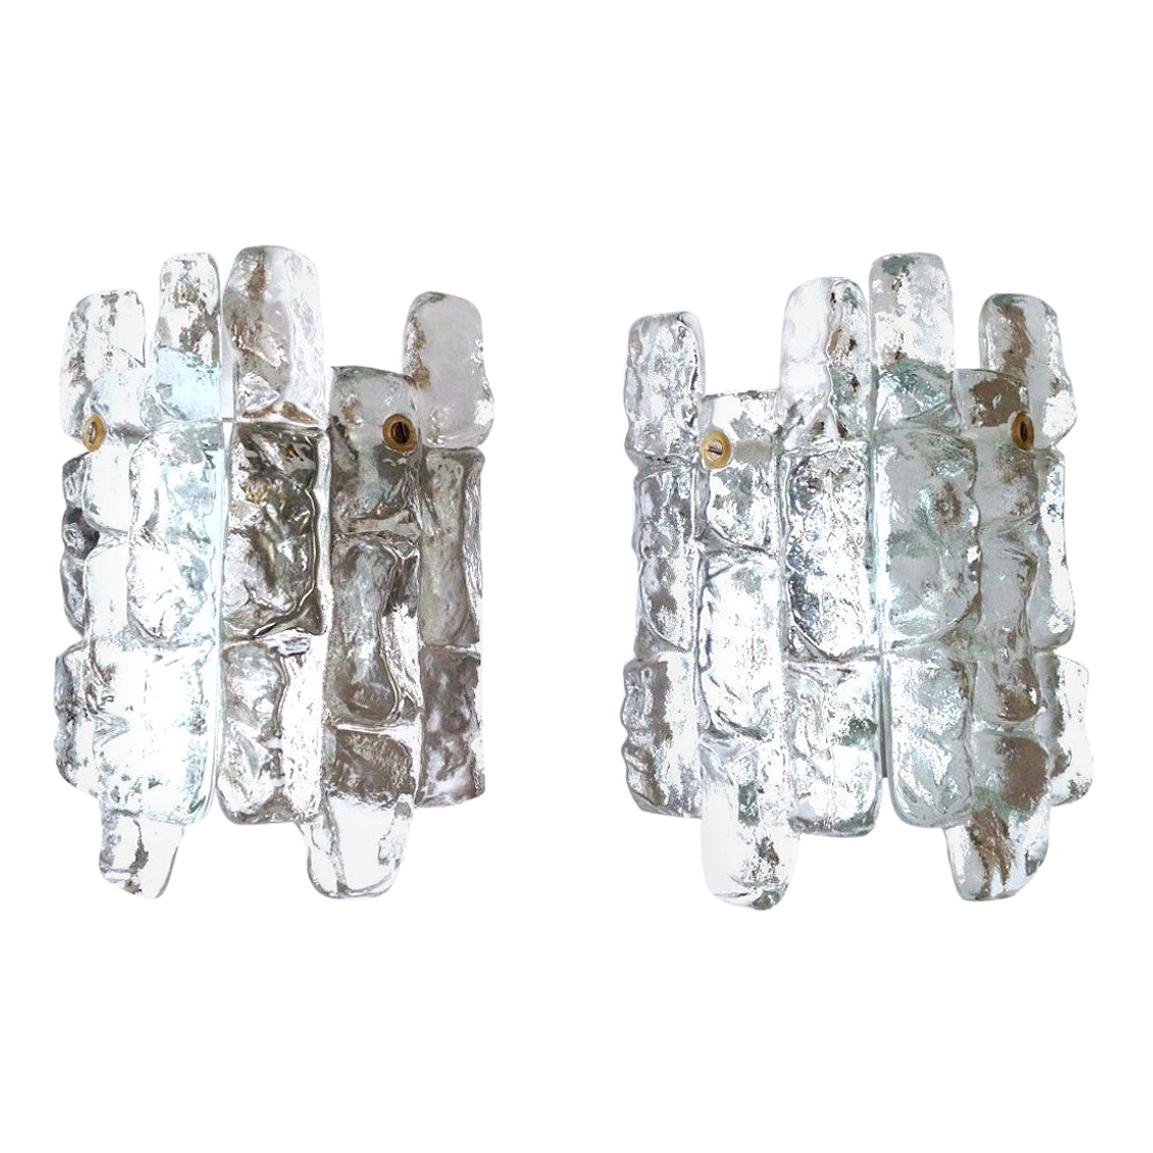 Pair of Midcentury Austrian Ice Glass Wall Sconces by Kalmar, 1970s